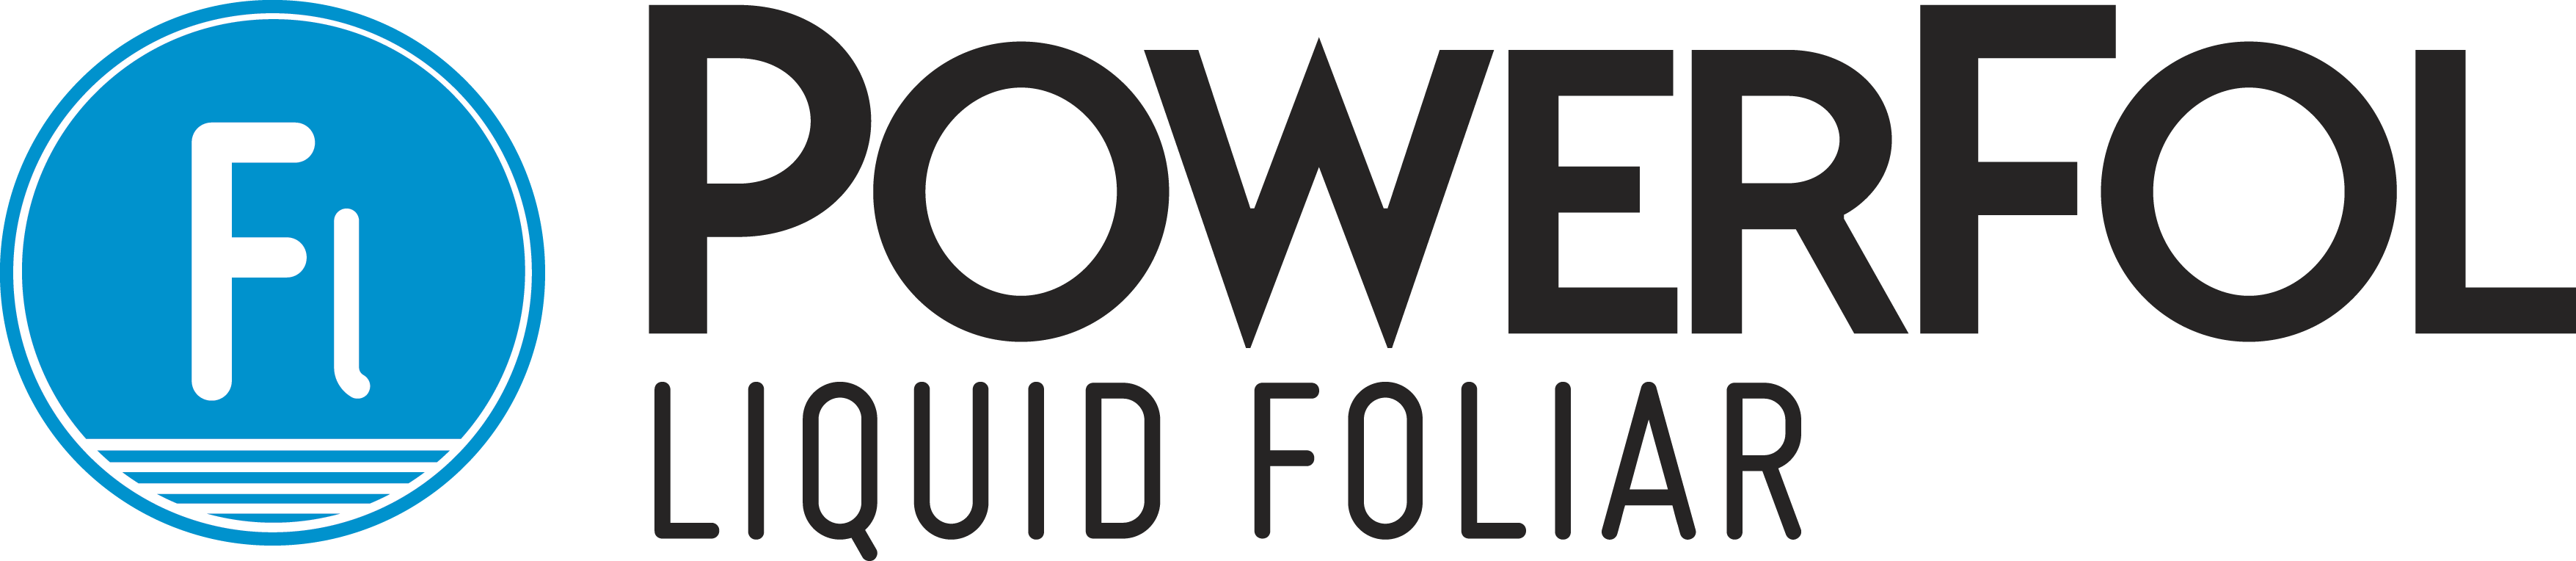 PowerFol liquid foliar